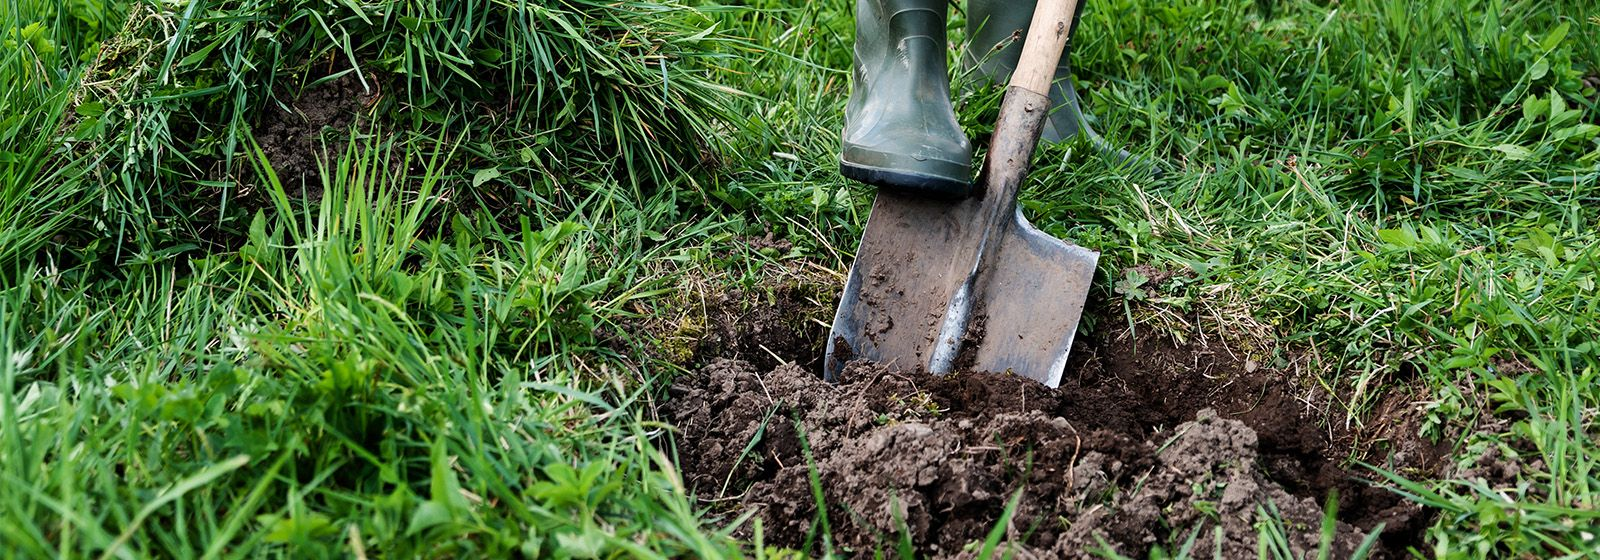 Before you dig, call 811. It's free